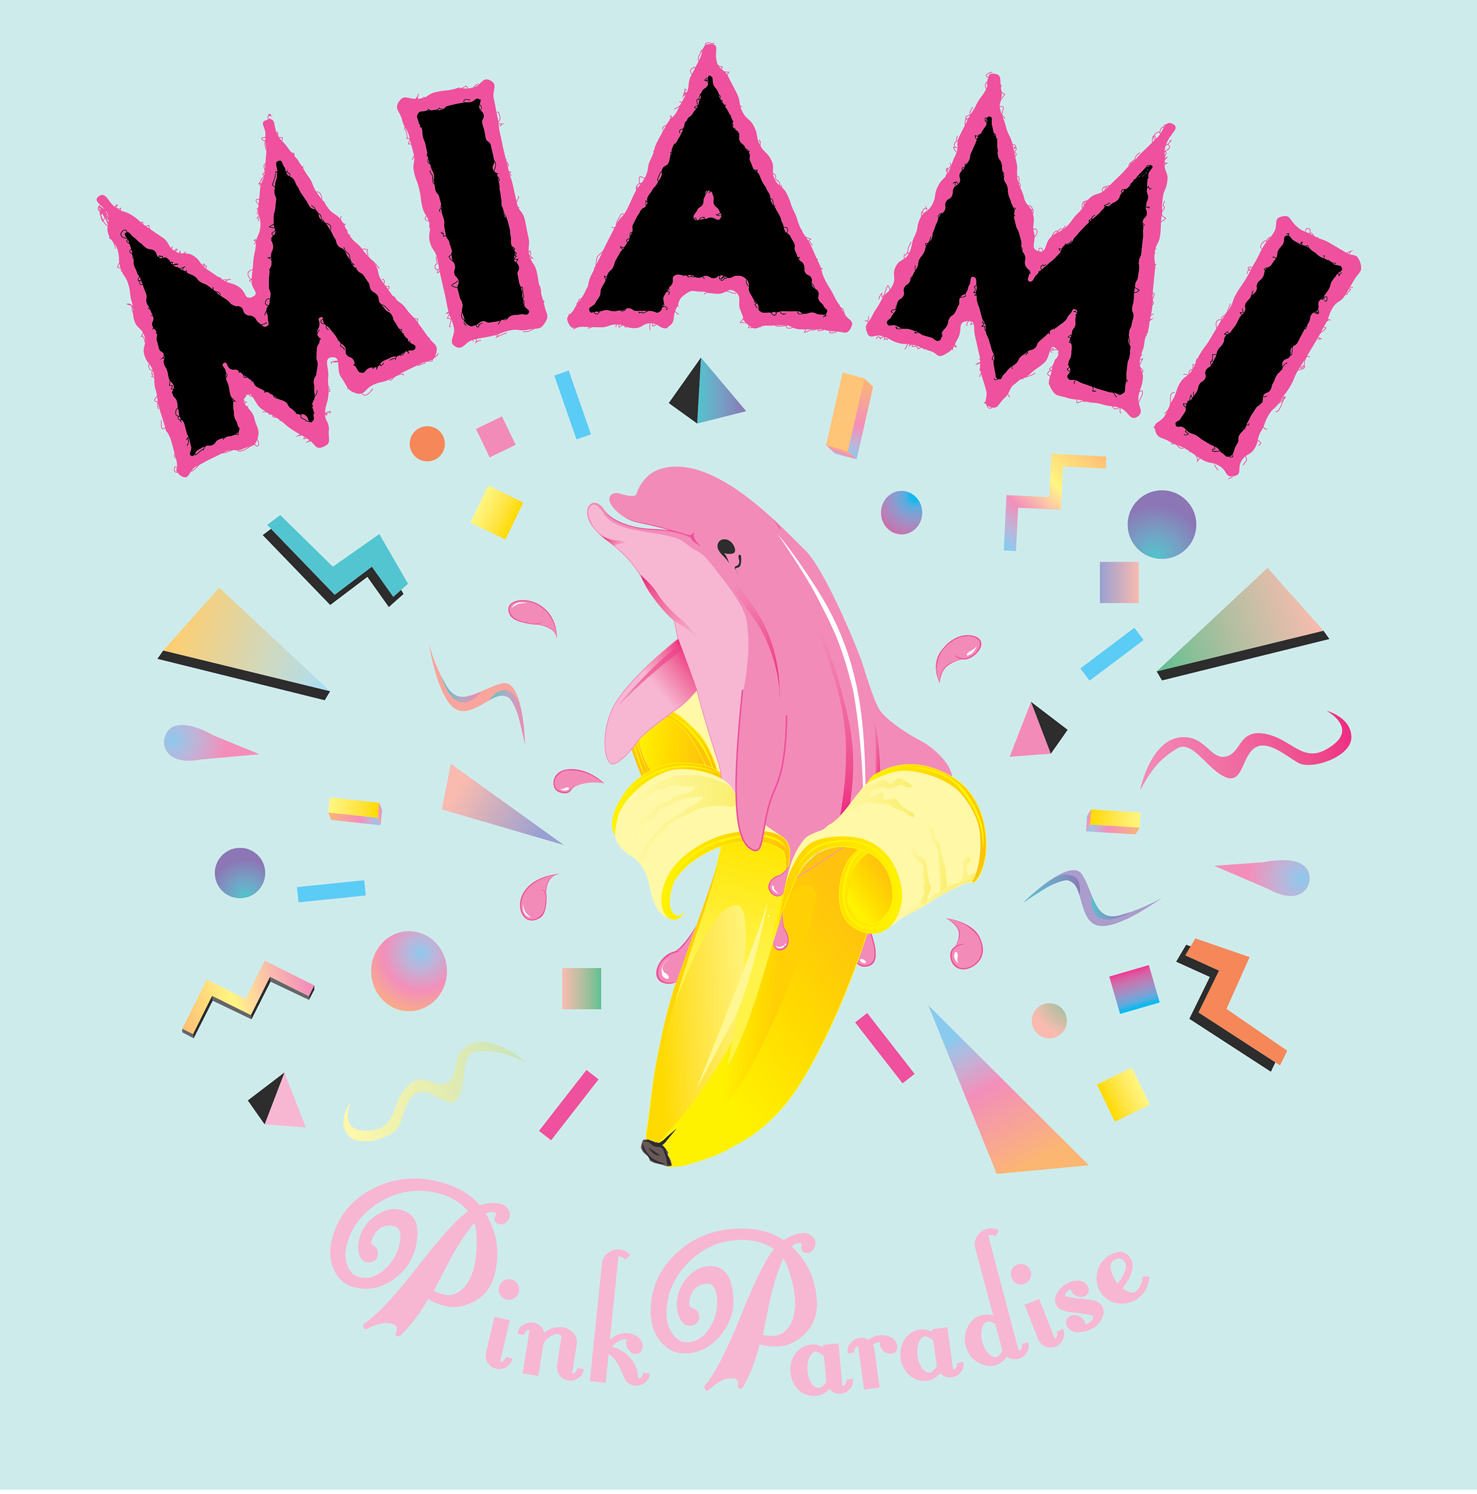 Miami dolphin pink paradise artwork - Pink dolphin logo wallpaper ...